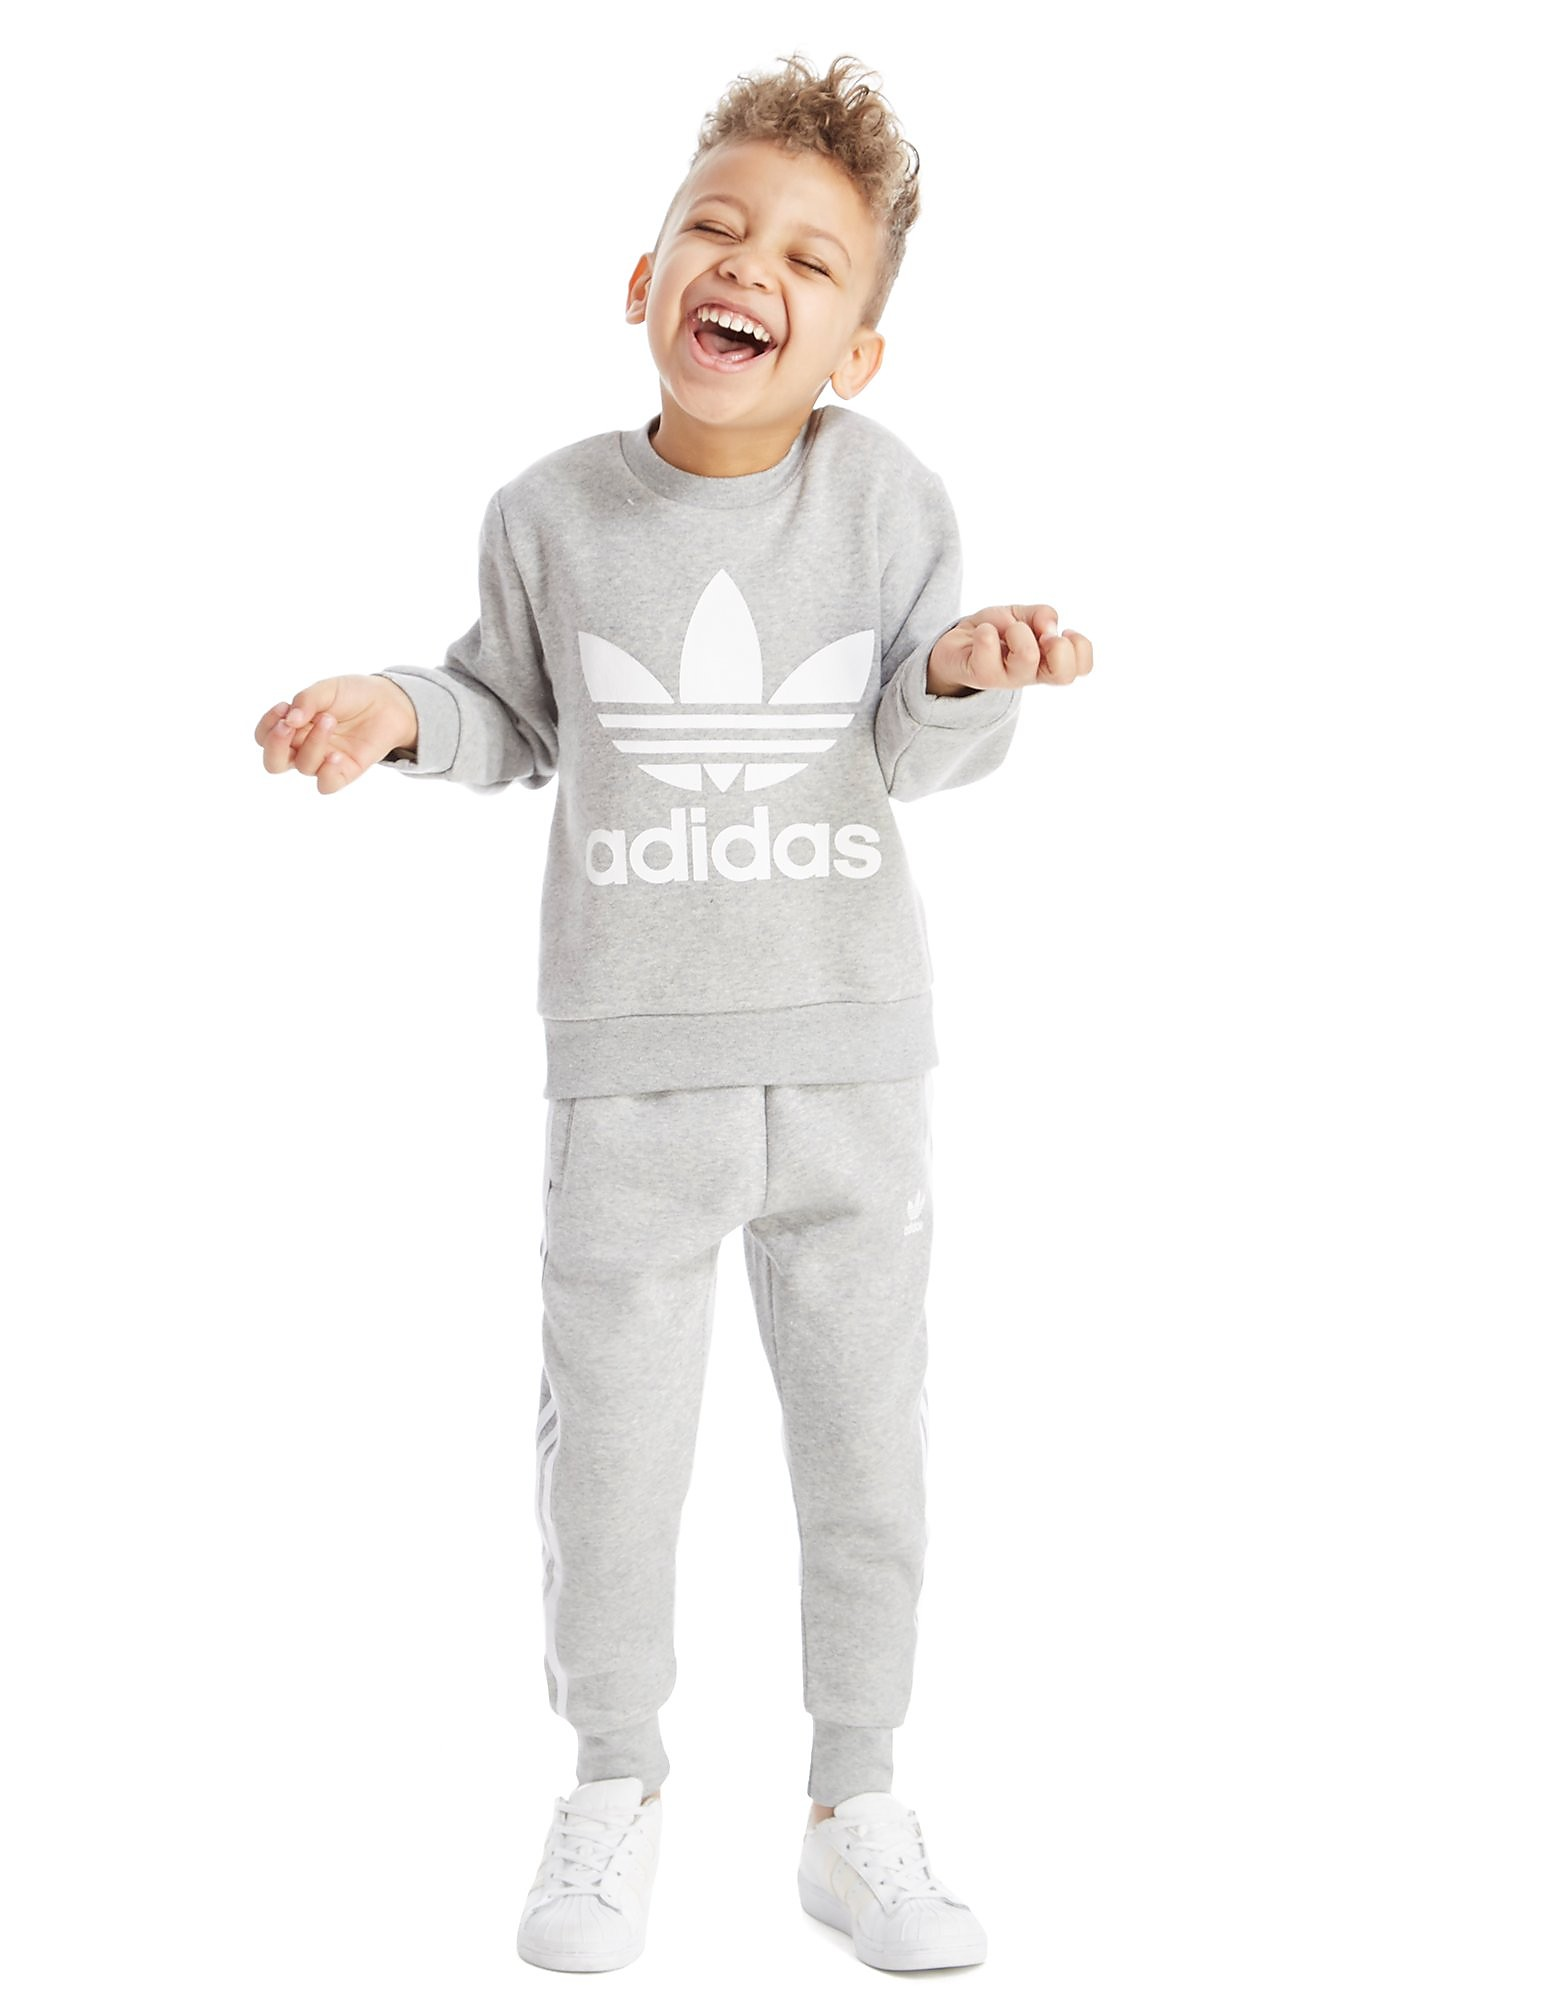 adidas Originals Adicolor Crew Suit Bambino